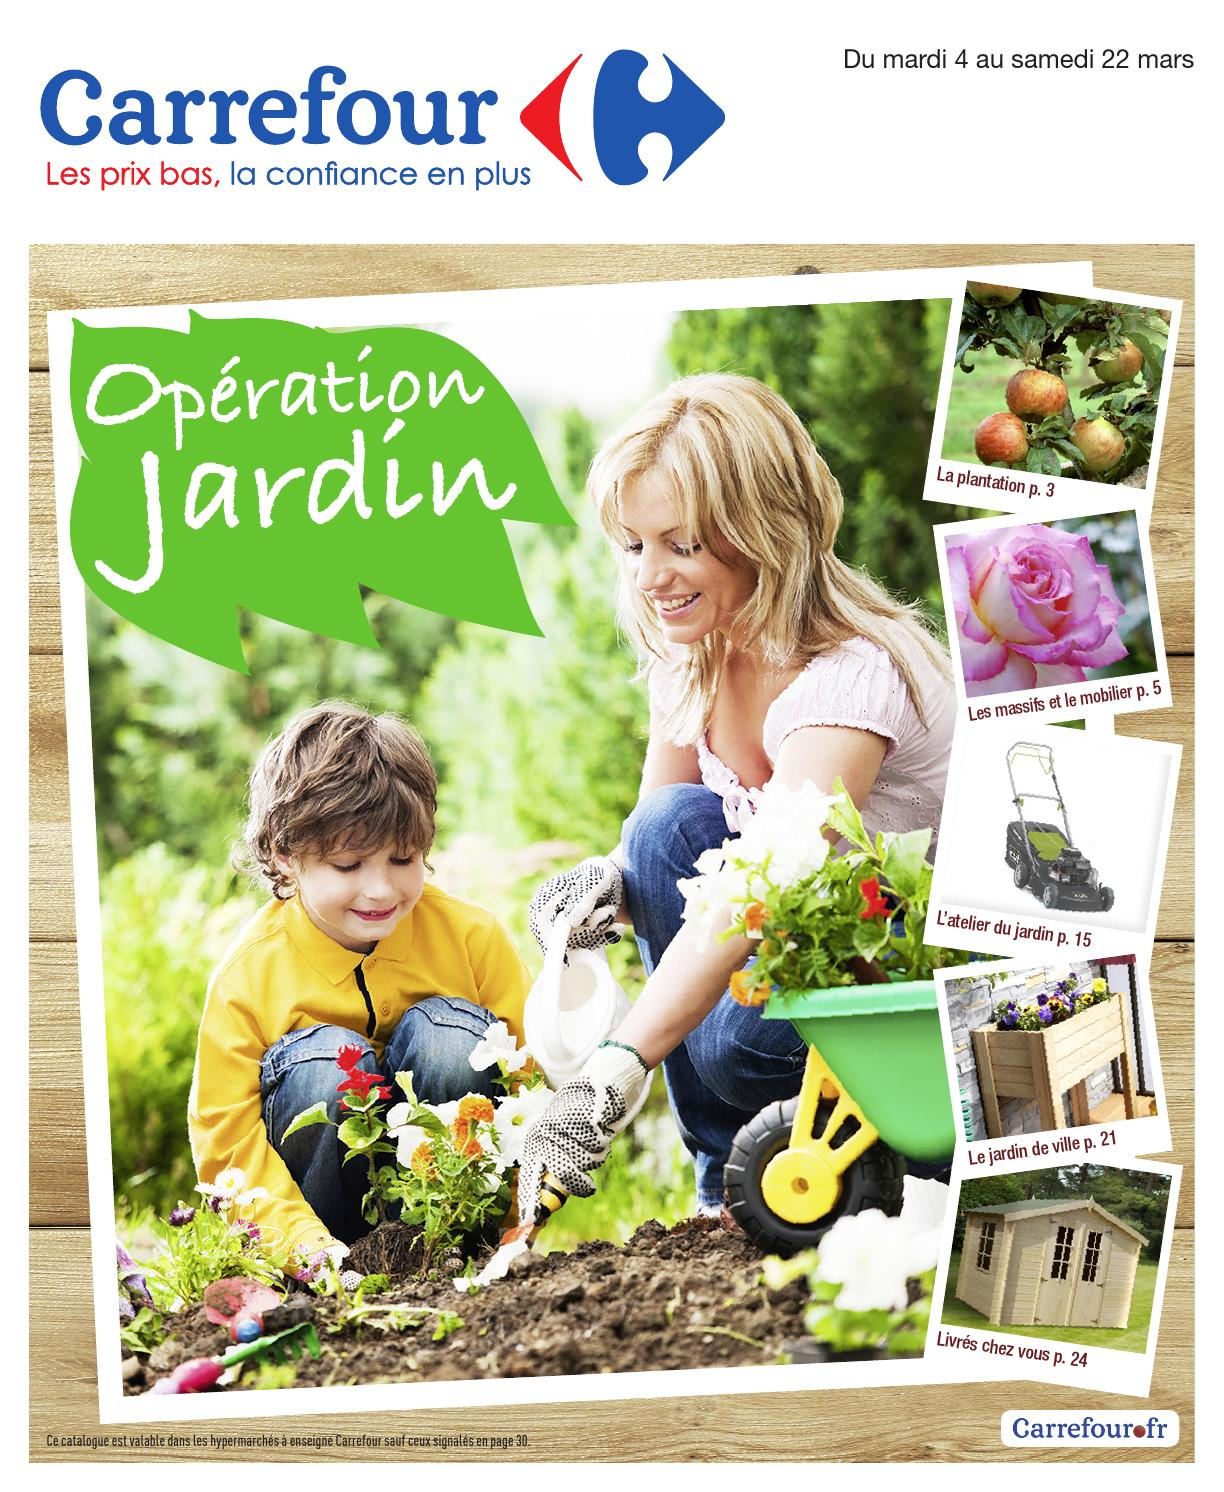 Catalogue Carrefour - 4-22.03.2014 By Joe Monroe - Issuu pour Abri De Jardin Carrefour